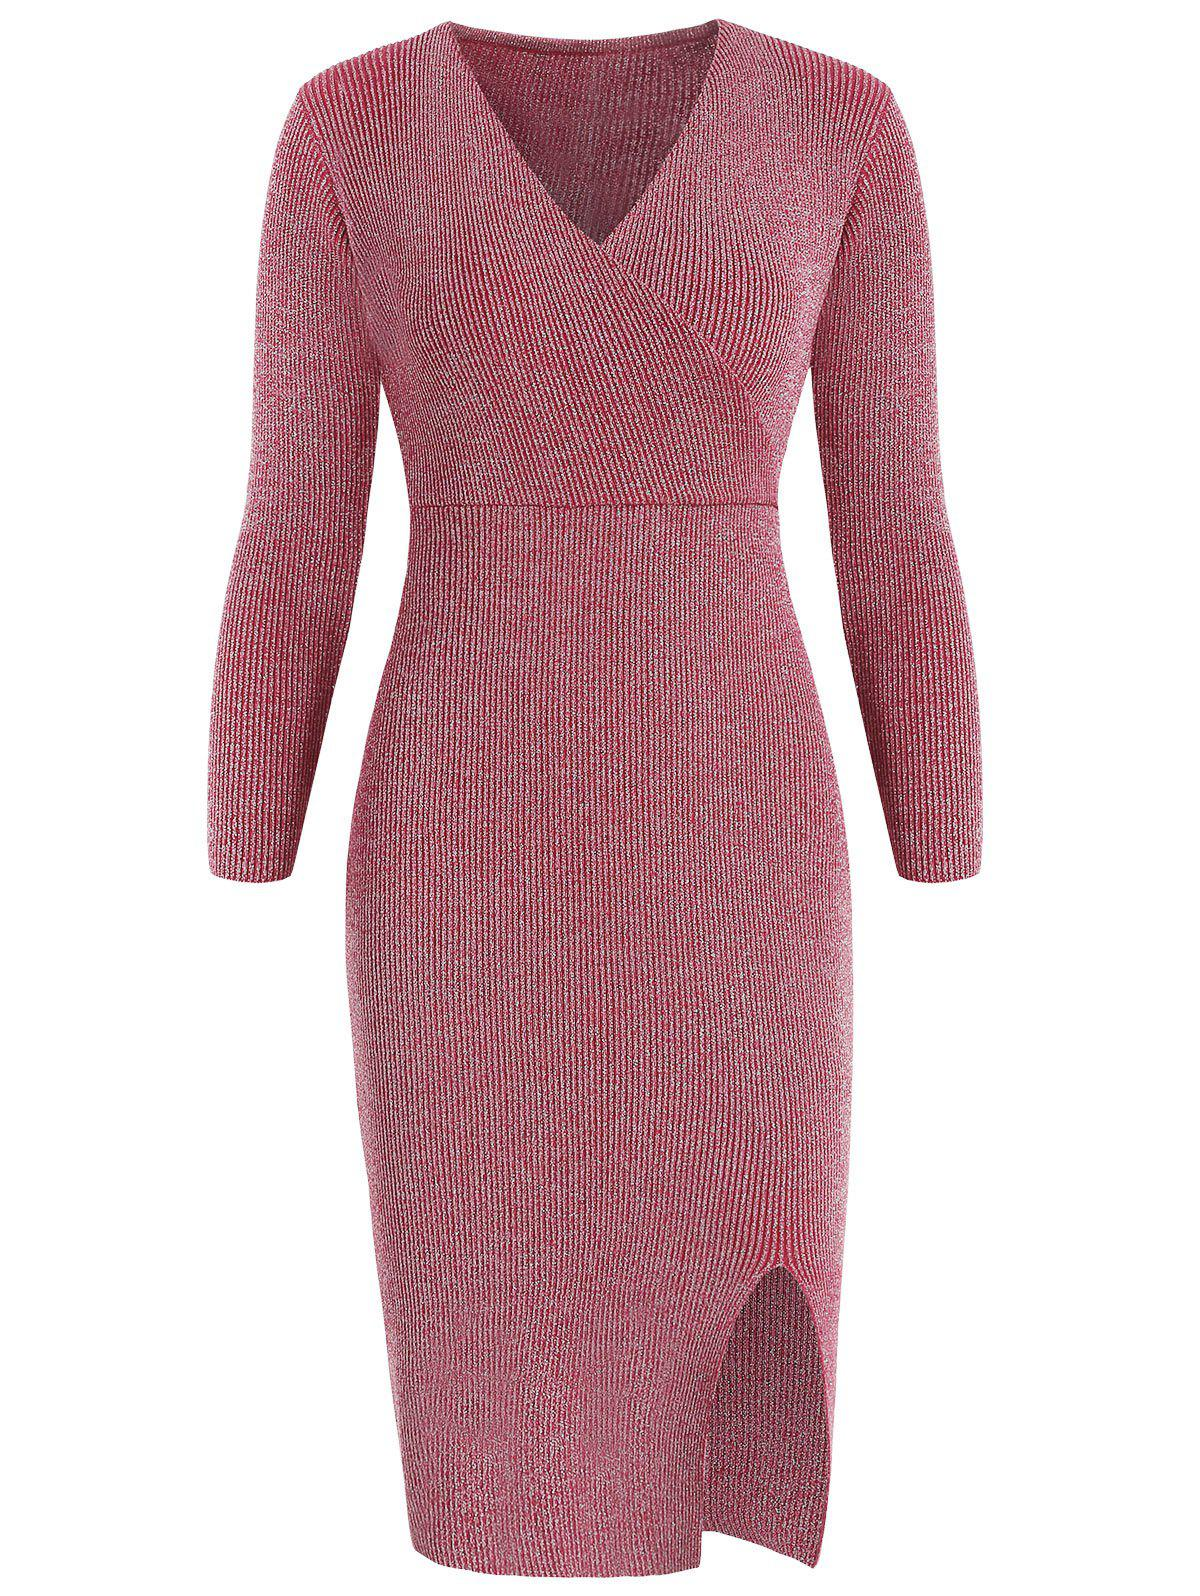 New Full Sleeve Shiny Knit Surplice Dress